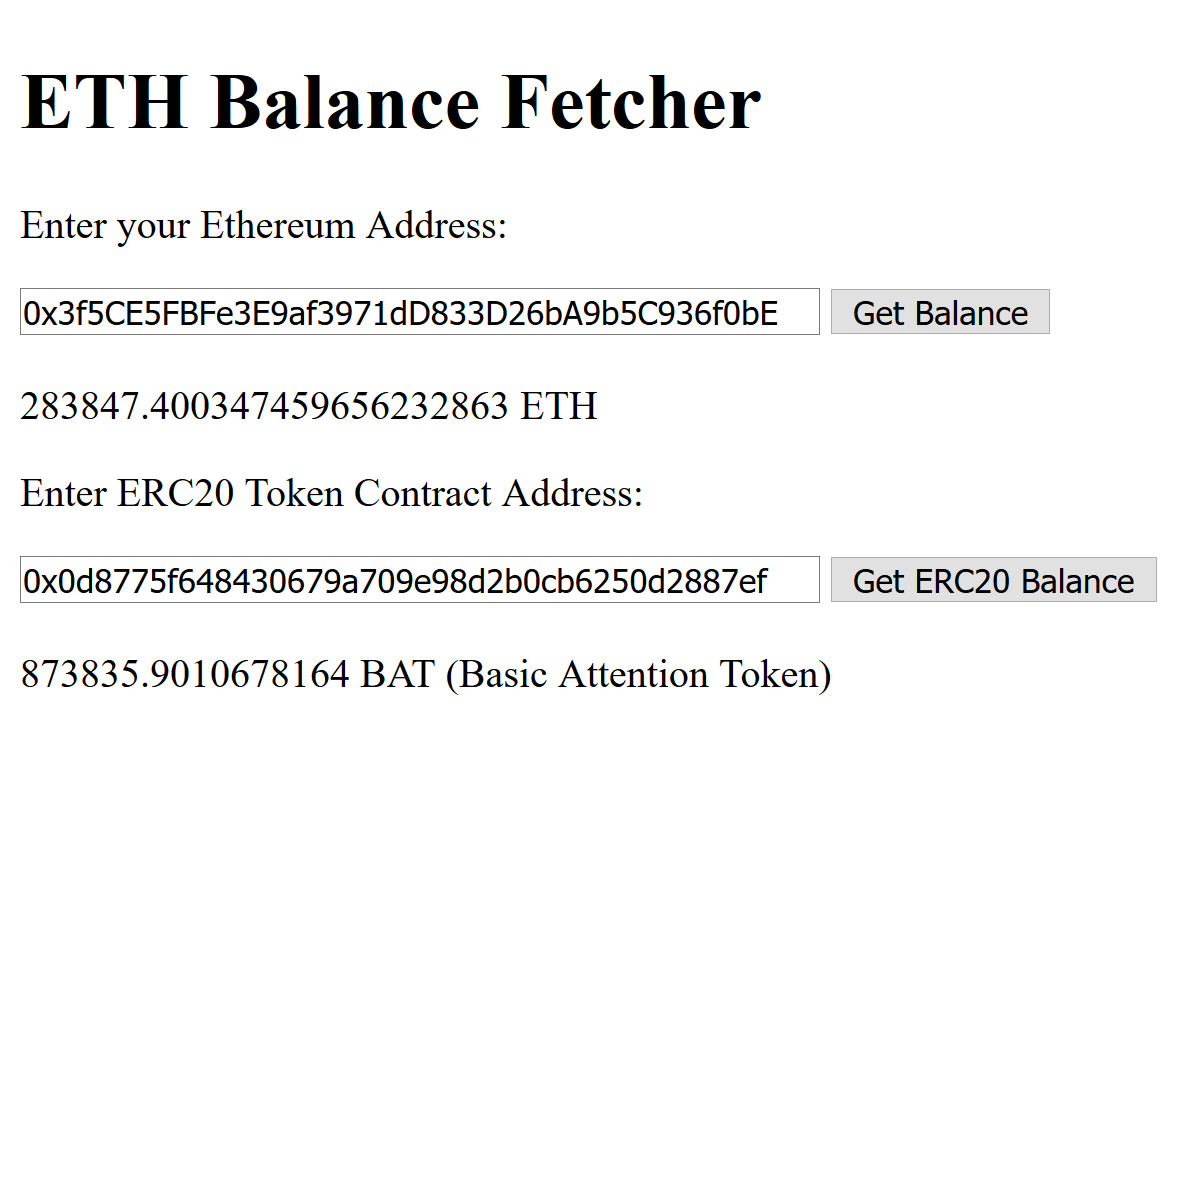 ethbalance Screenshot